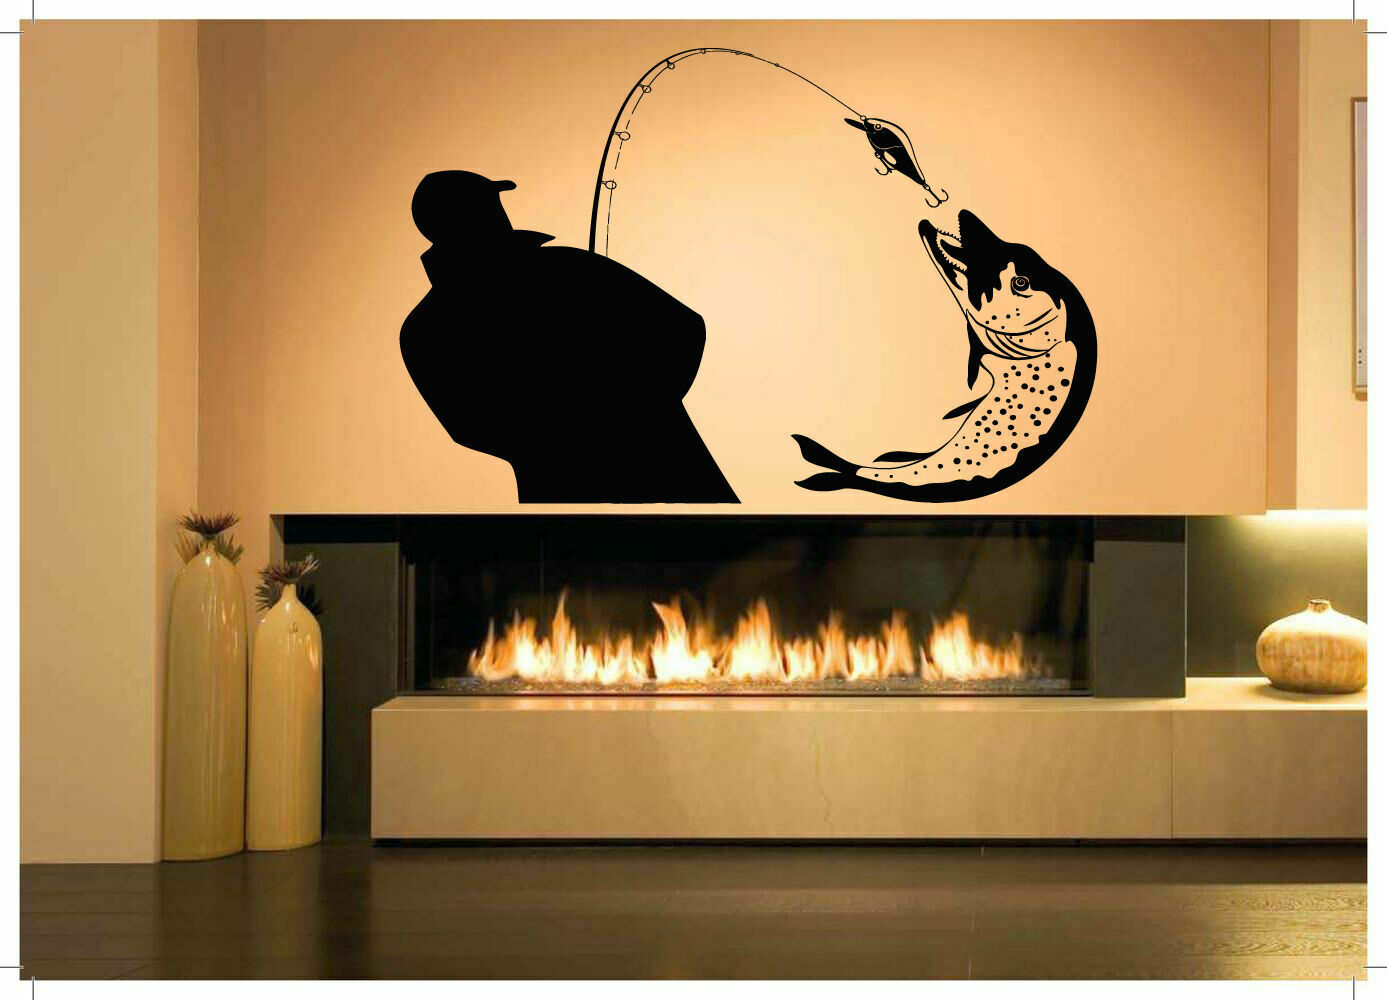 Home Decor Vinyl Wall Decal Fishing Hobby Sticker Mural Art Deco Interior Wallpaper 2KN20-in Wall Stickers from Home & Garden